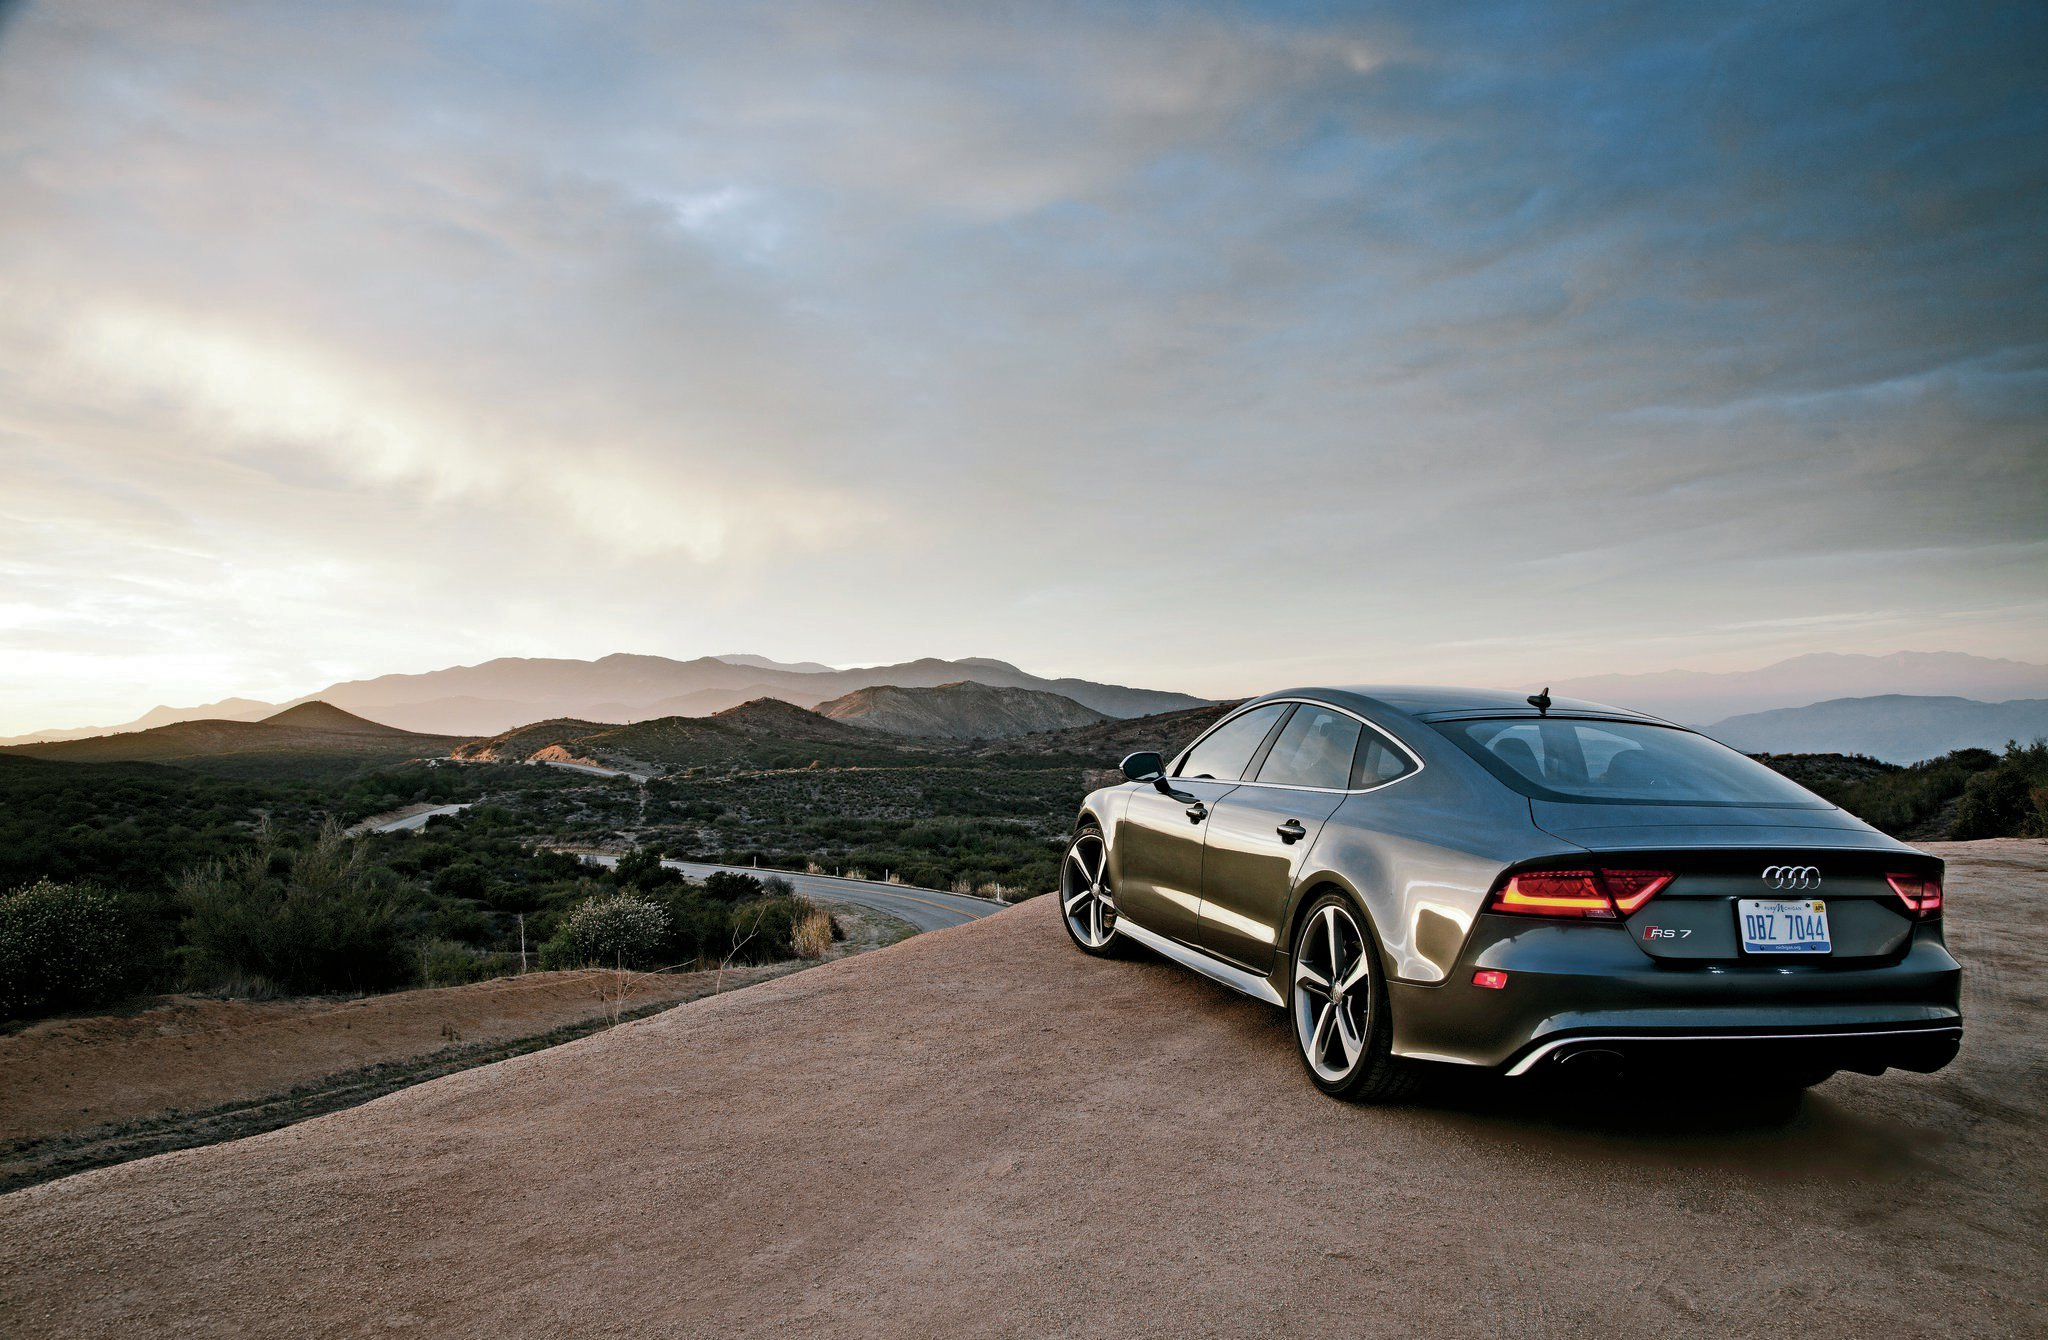 2014 Audi RS 7 Rear Three Quarters